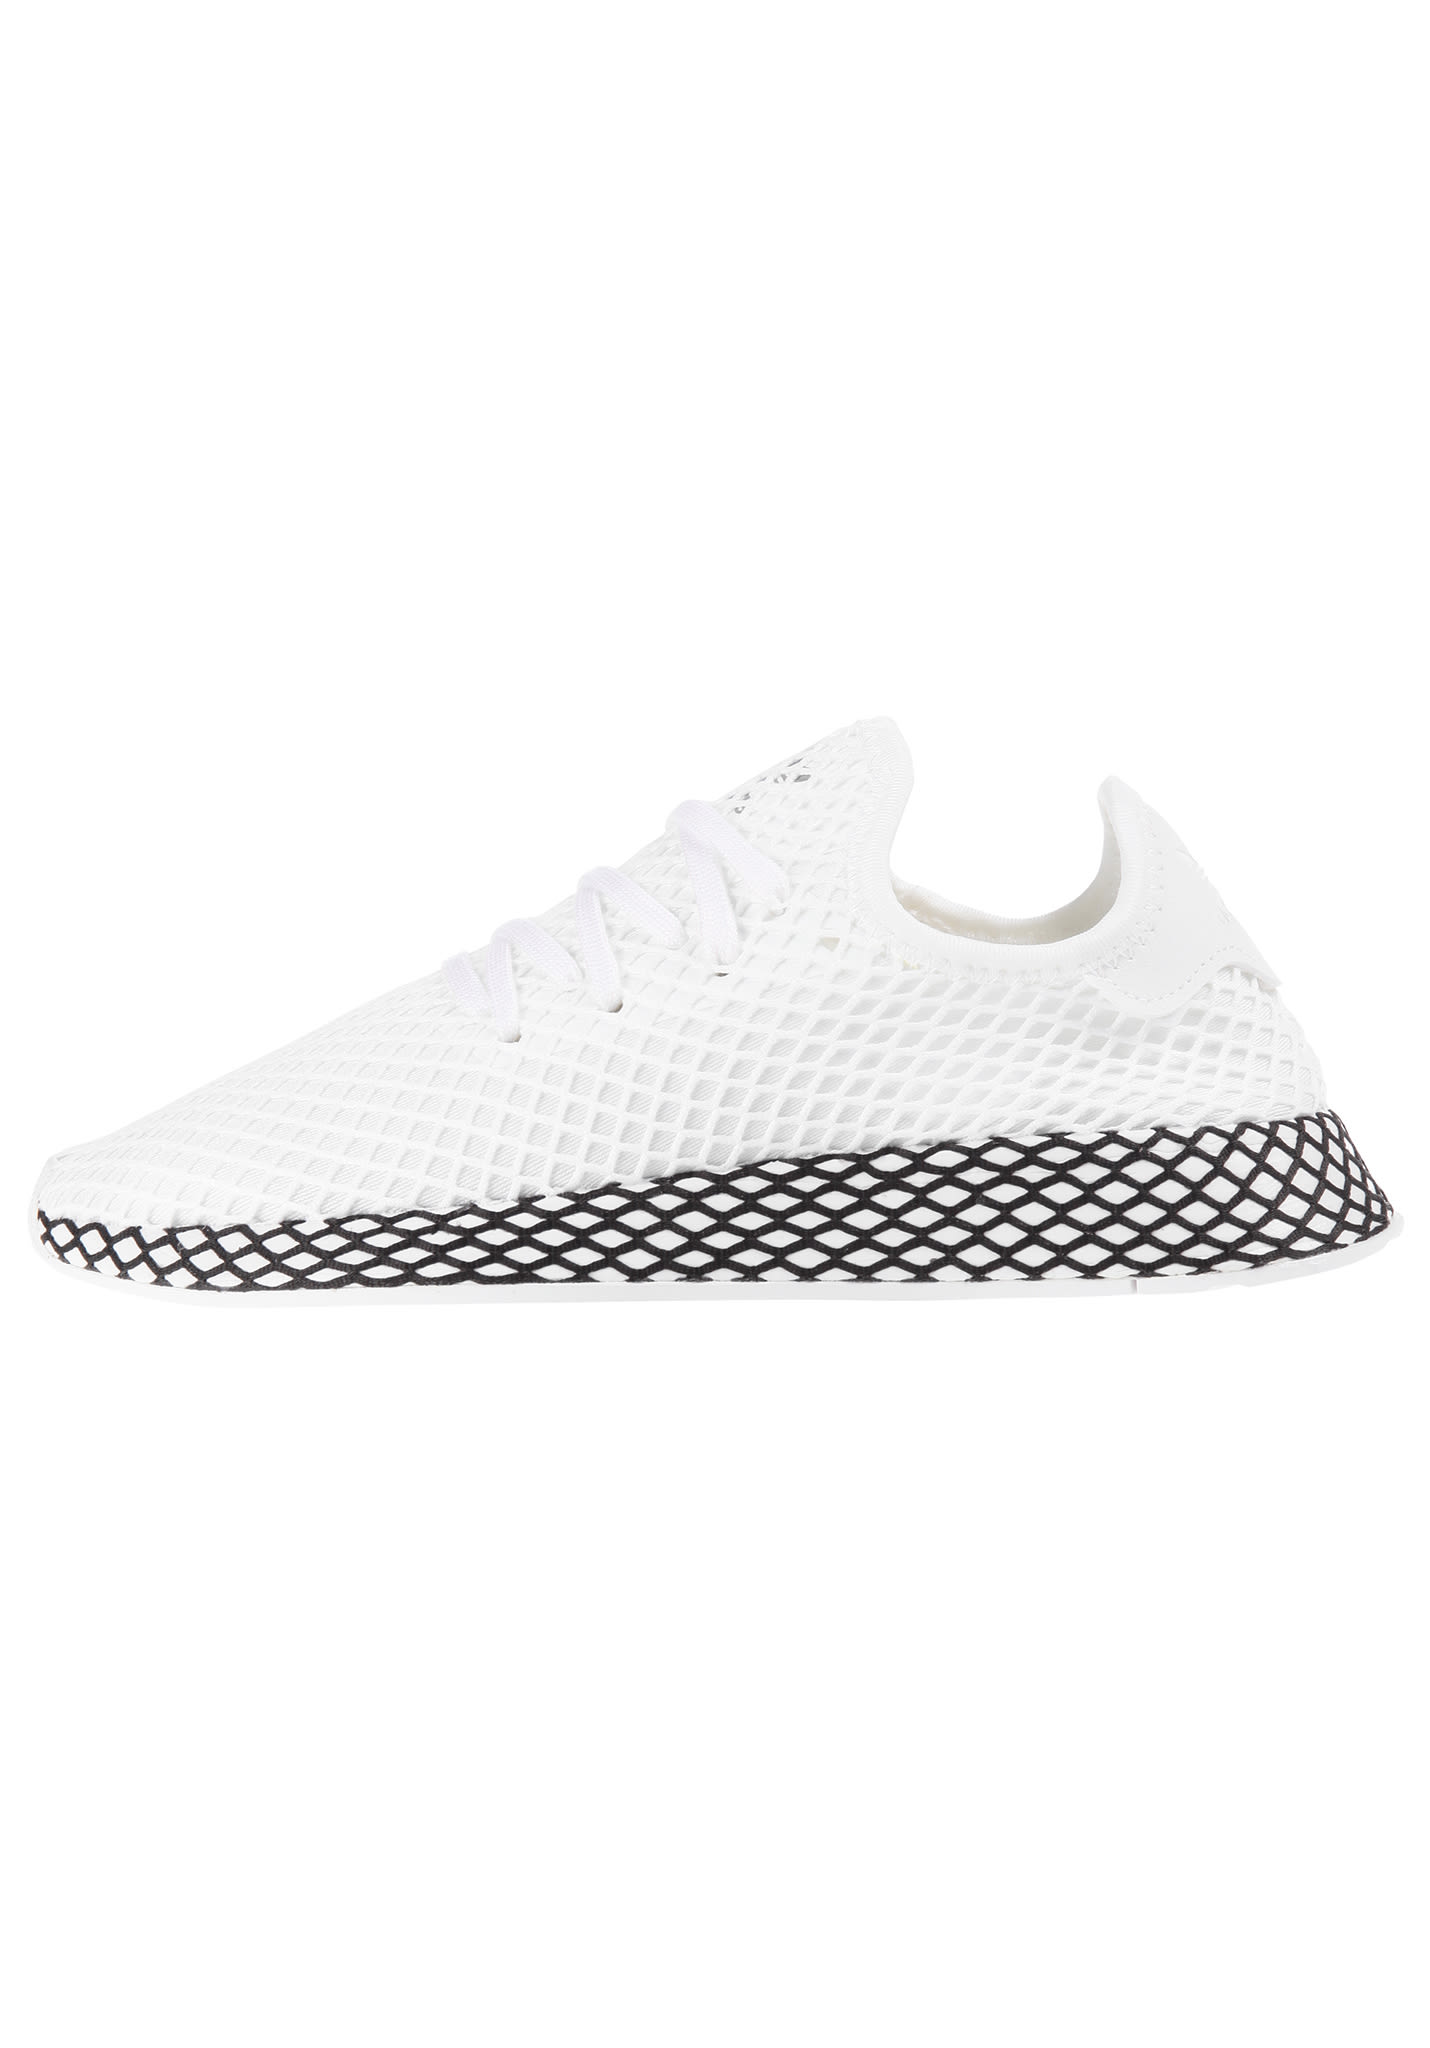 sports shoes 490aa 1f479 ADIDAS ORIGINALS Deerupt Runner - Sneakers - White